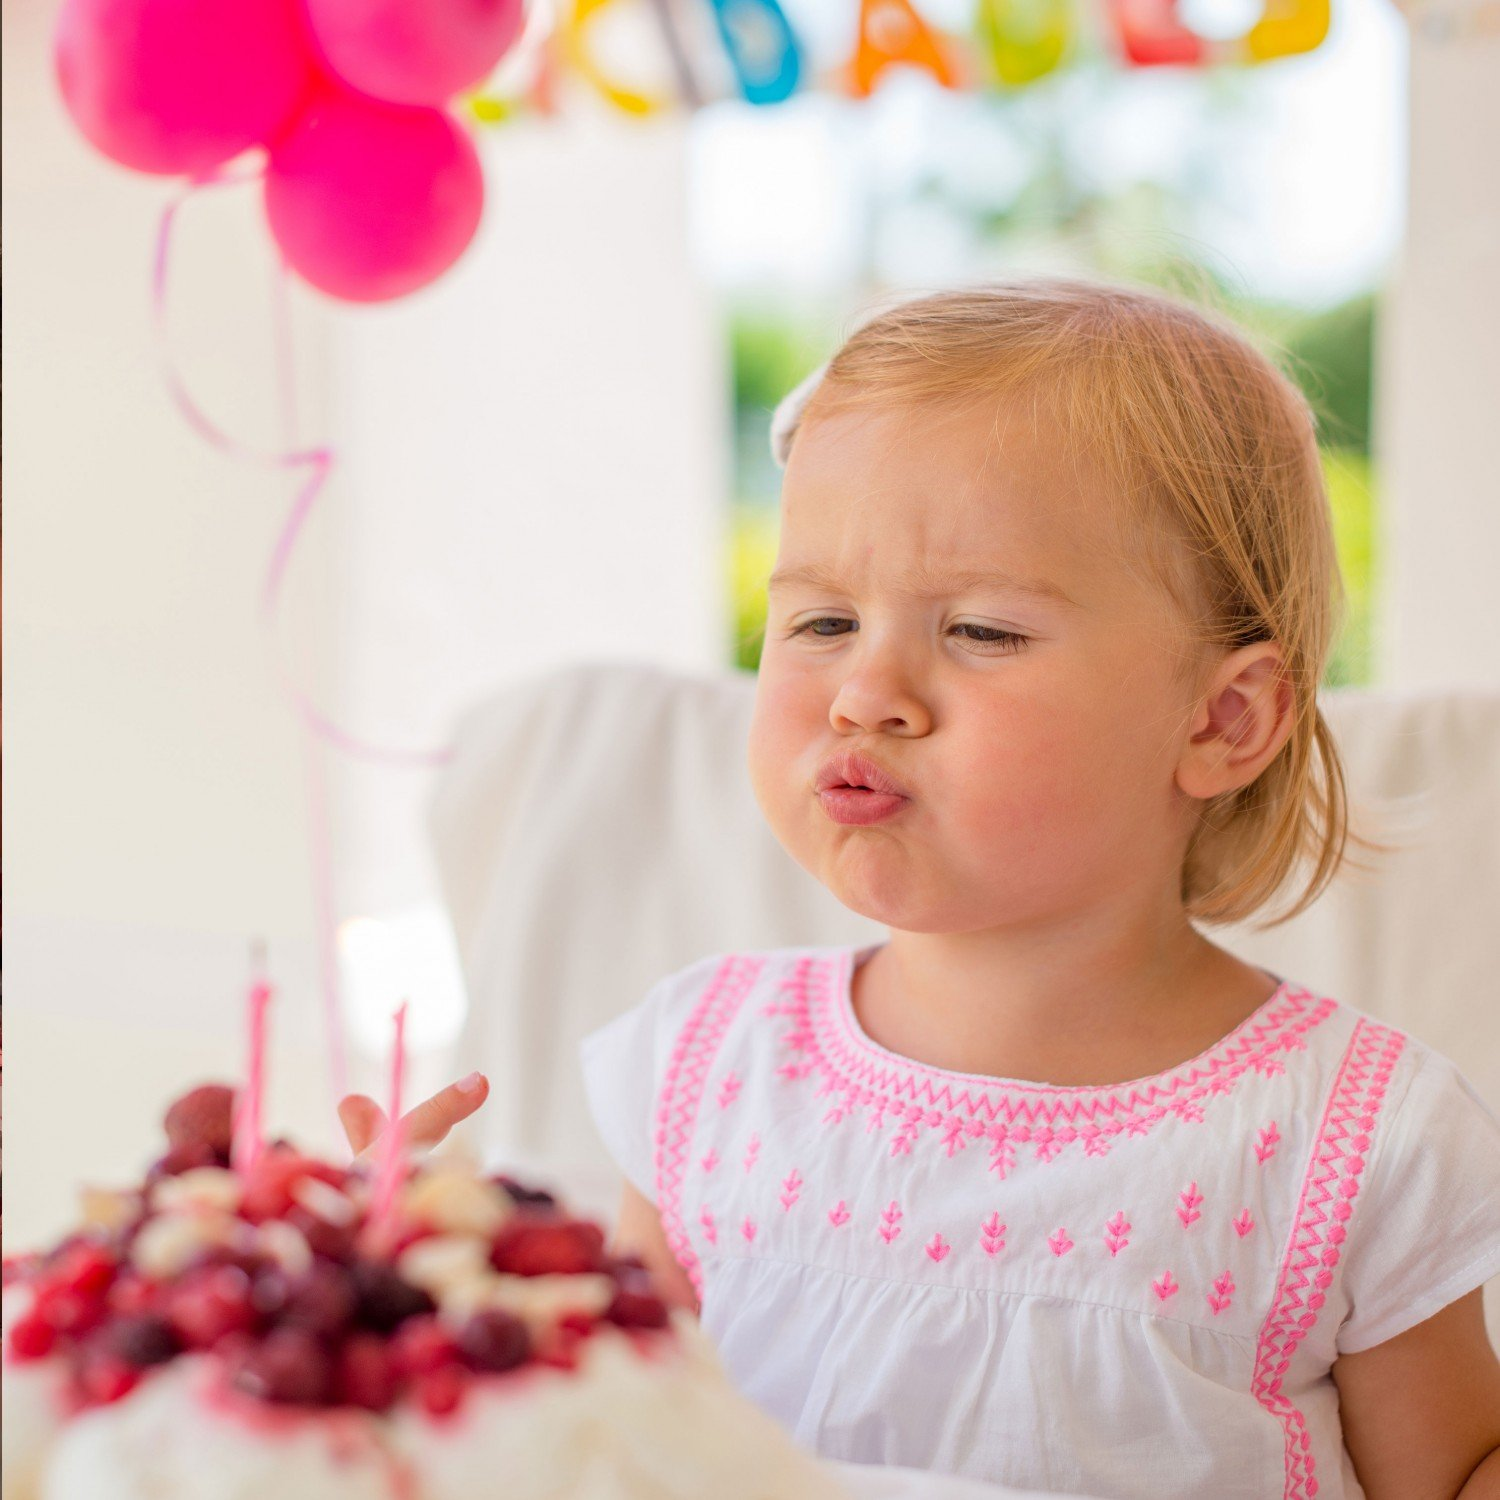 birthday girl blowing candles out at a birthday party